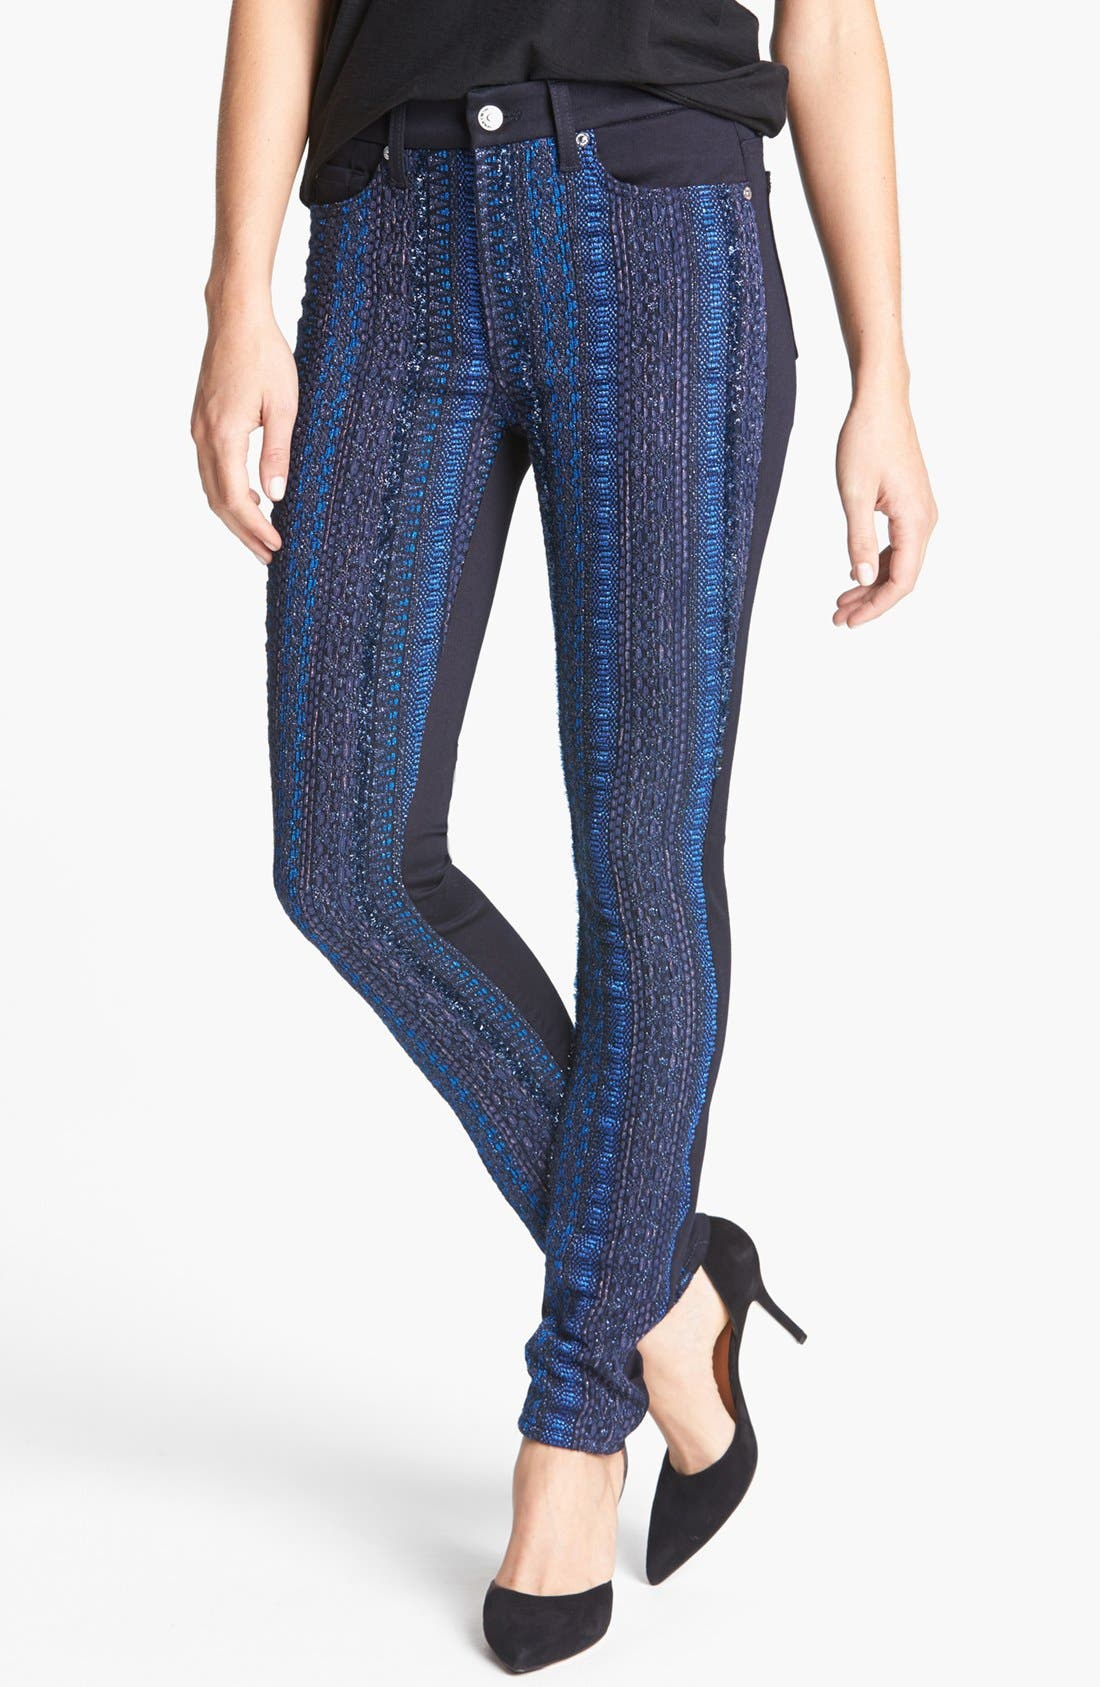 Main Image - 7 For All Mankind® 'Malhia Kent - The Pieced Skinny' Jacquard Jeans (Blue Metallic Stripe)